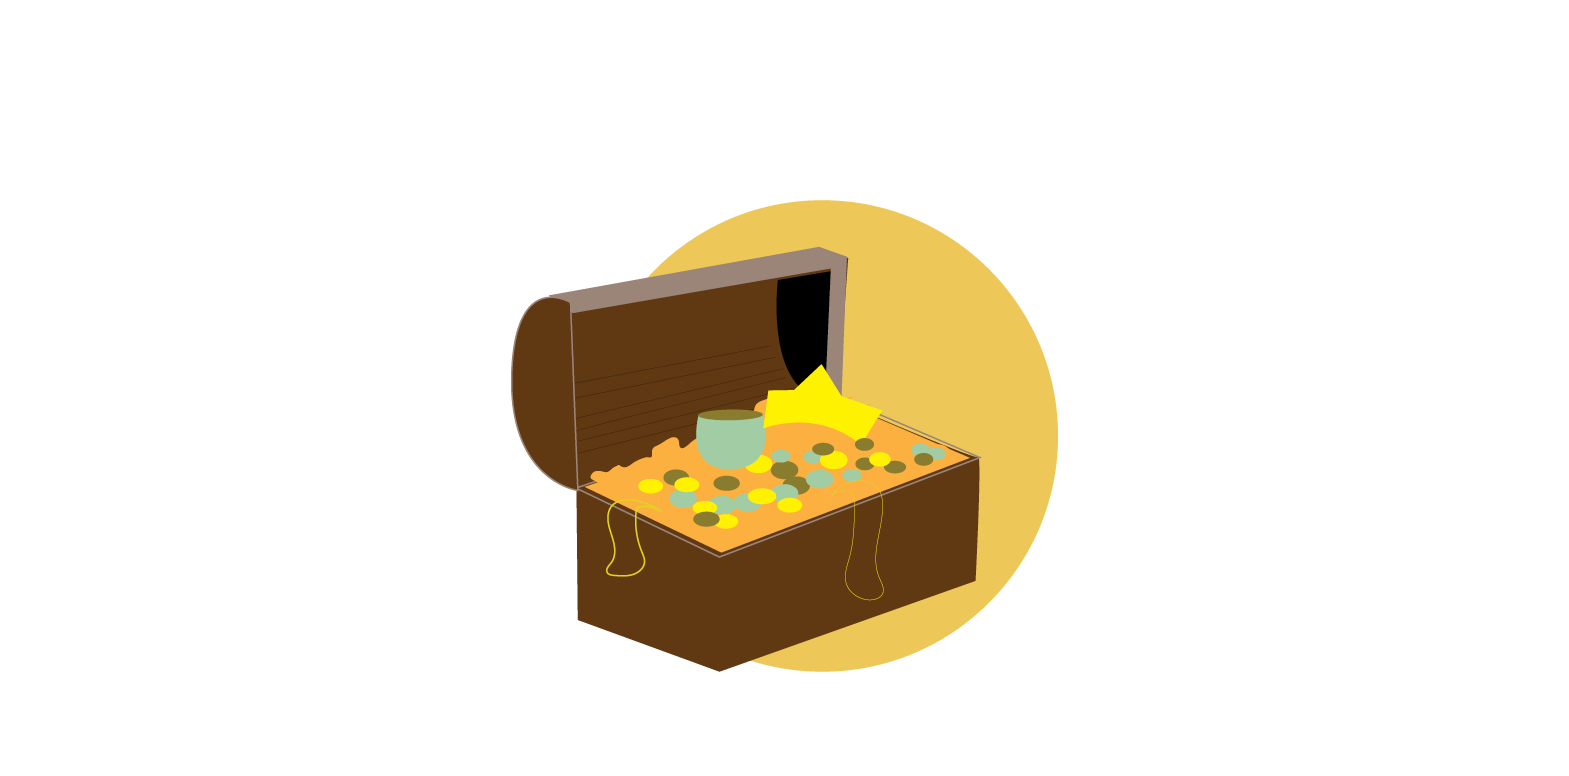 Save - treasure chest on a yellow circle